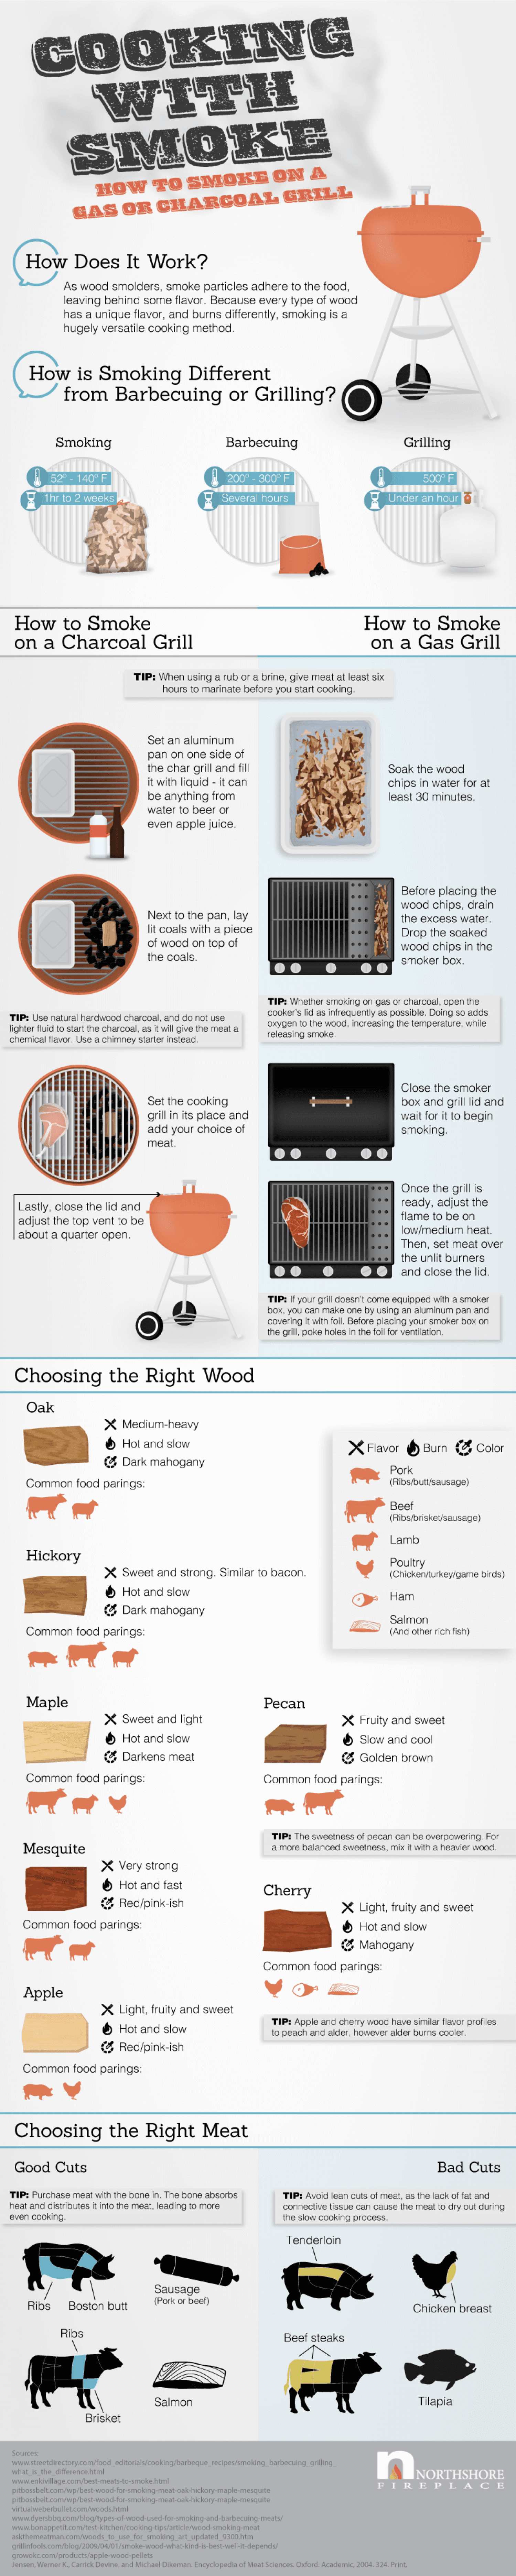 your guide to smoking food on a gas or charcoal grill